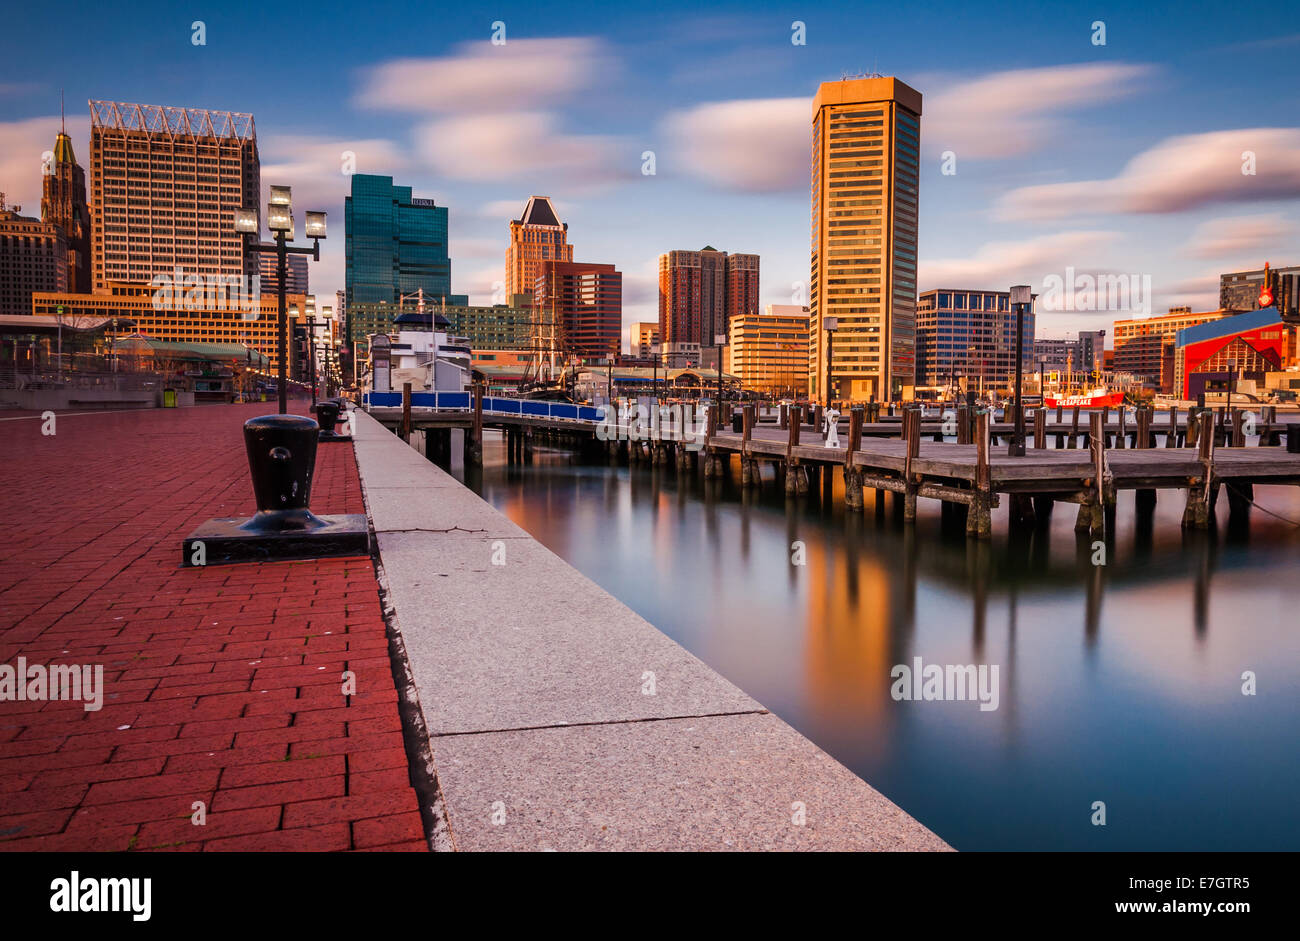 Long exposure of the Baltimore Skyline and Inner Harbor Promenade, Baltimore, Maryland - Stock Image